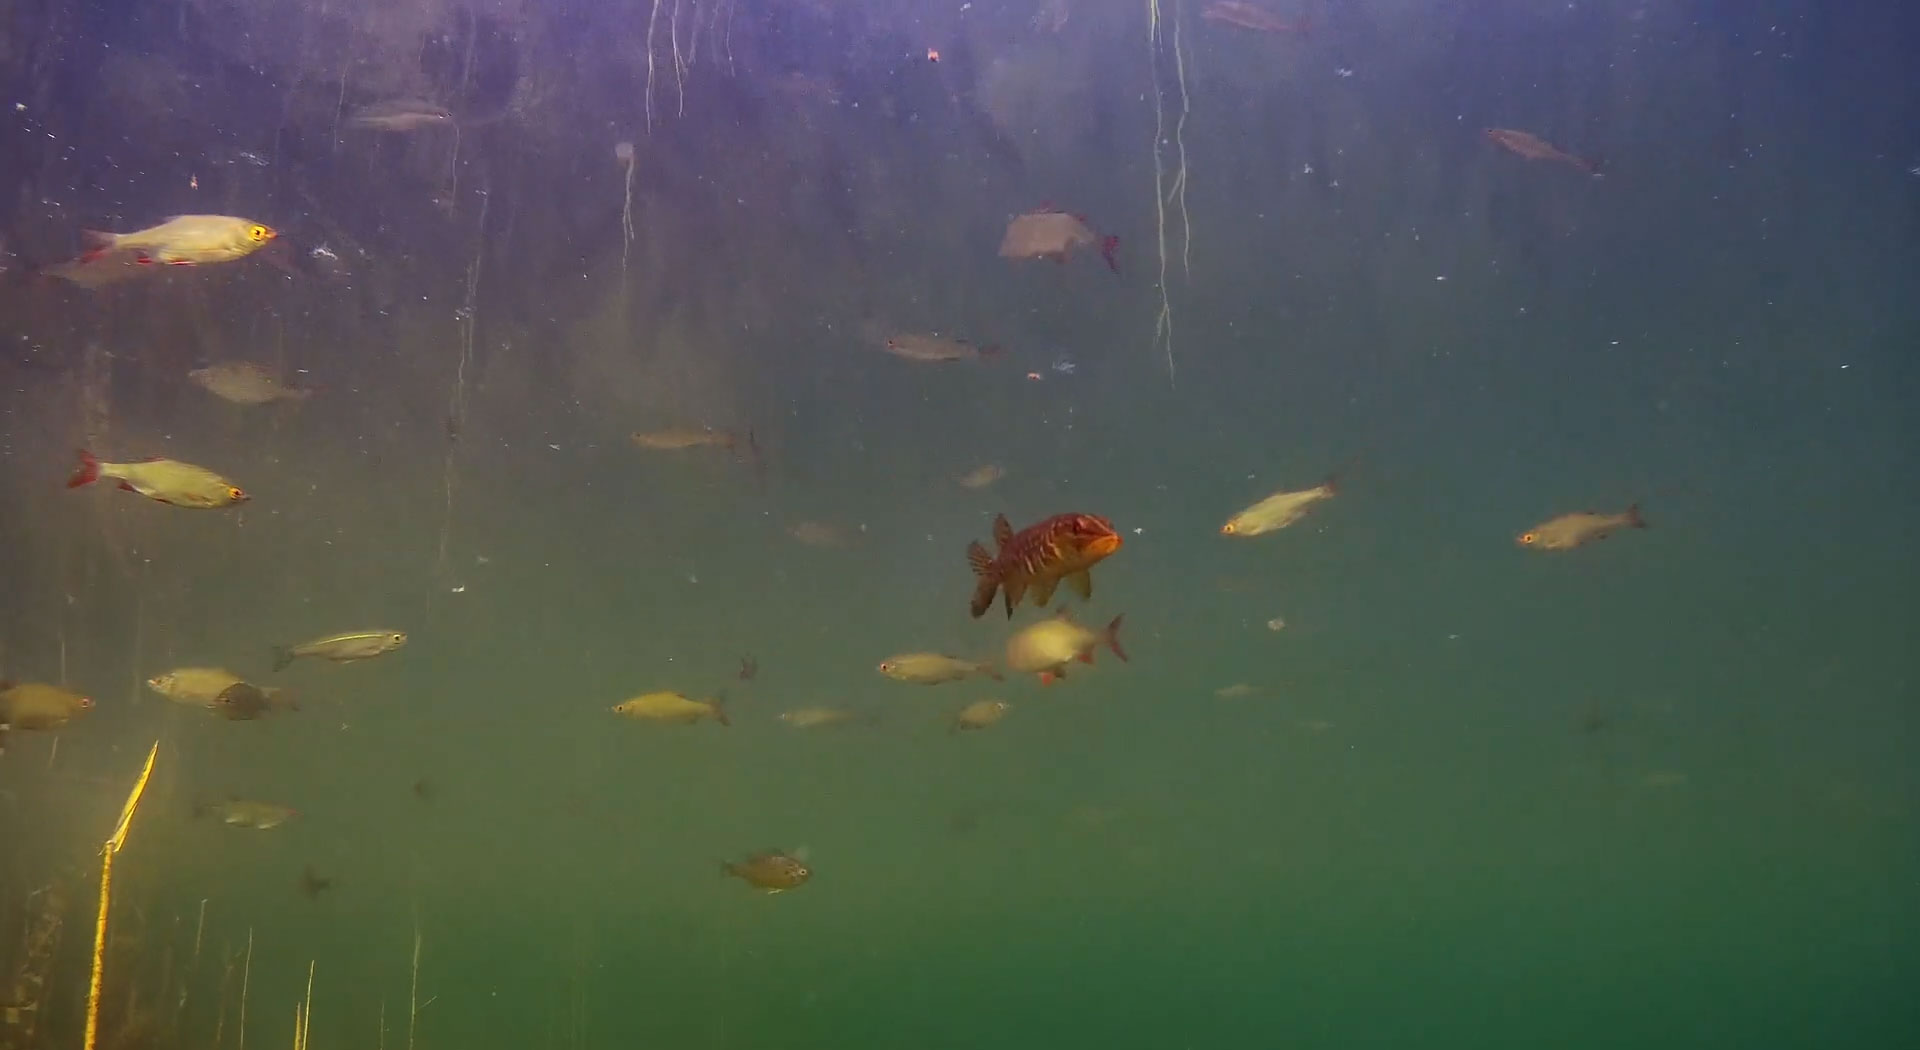 grass-pickerel-underwater-footage.jpg